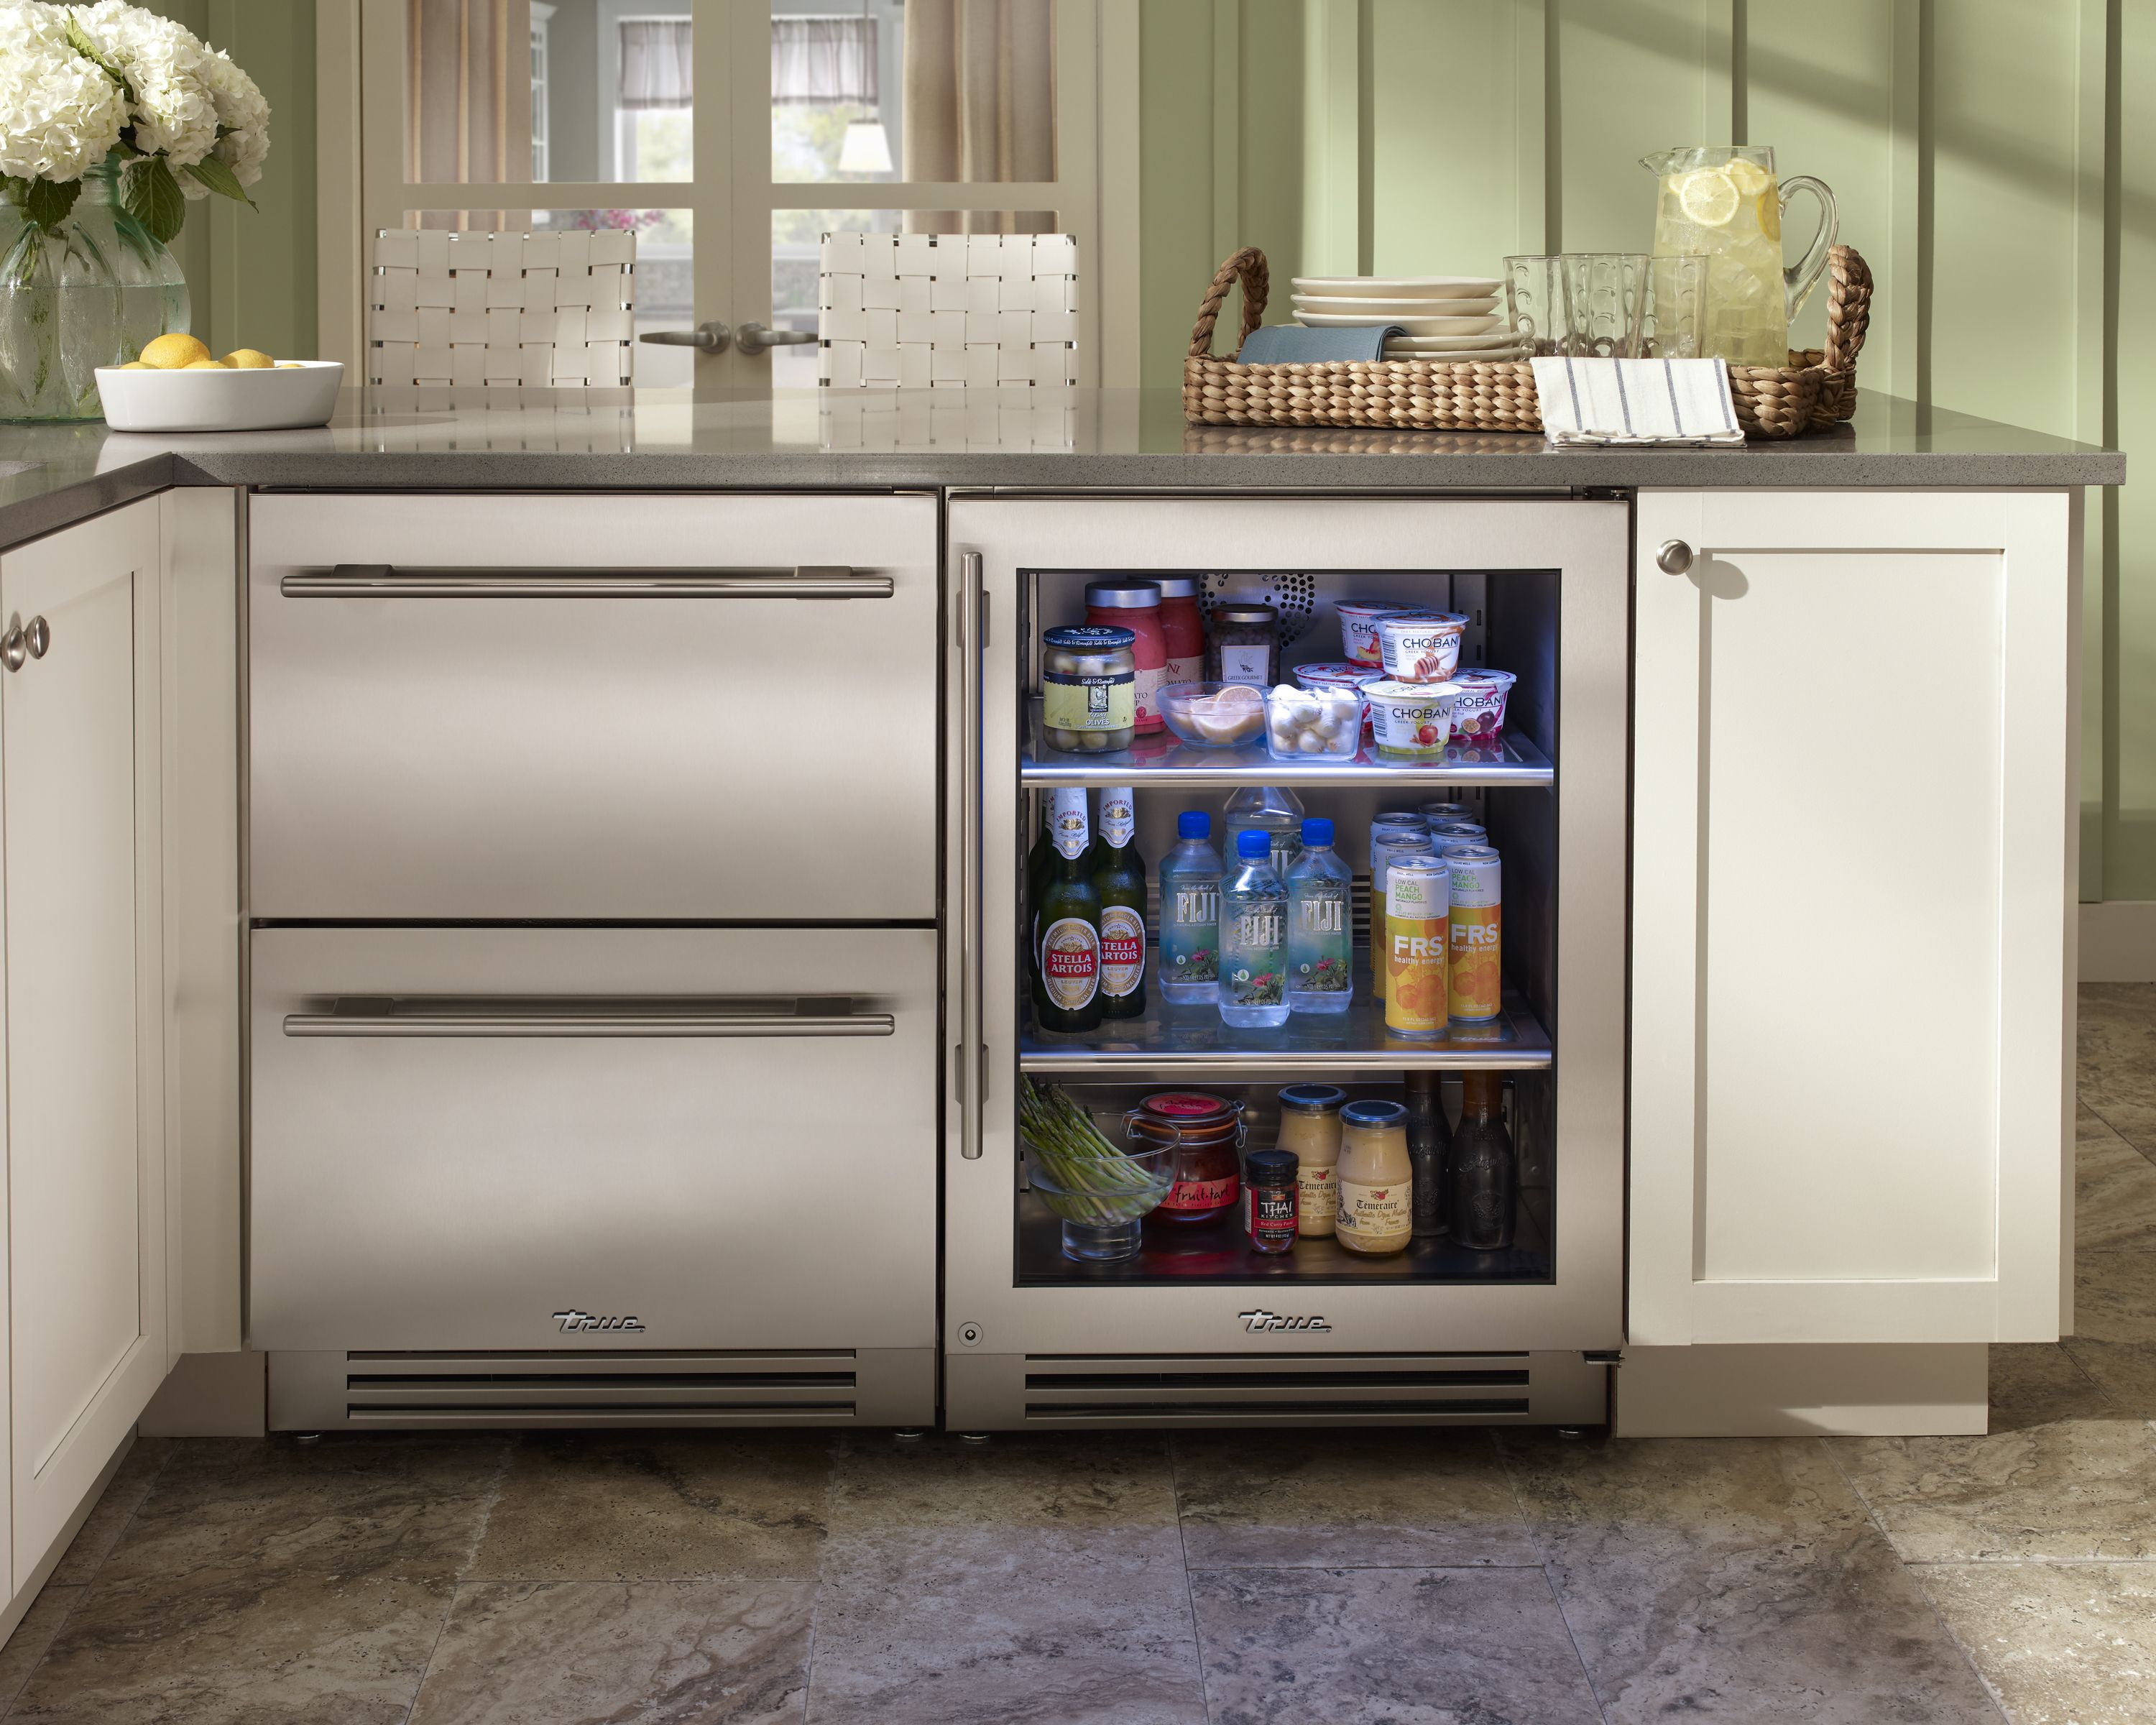 Rhode Island Kitchen With True Residential 24 Refrigerator Drawers And 24 Undercounter